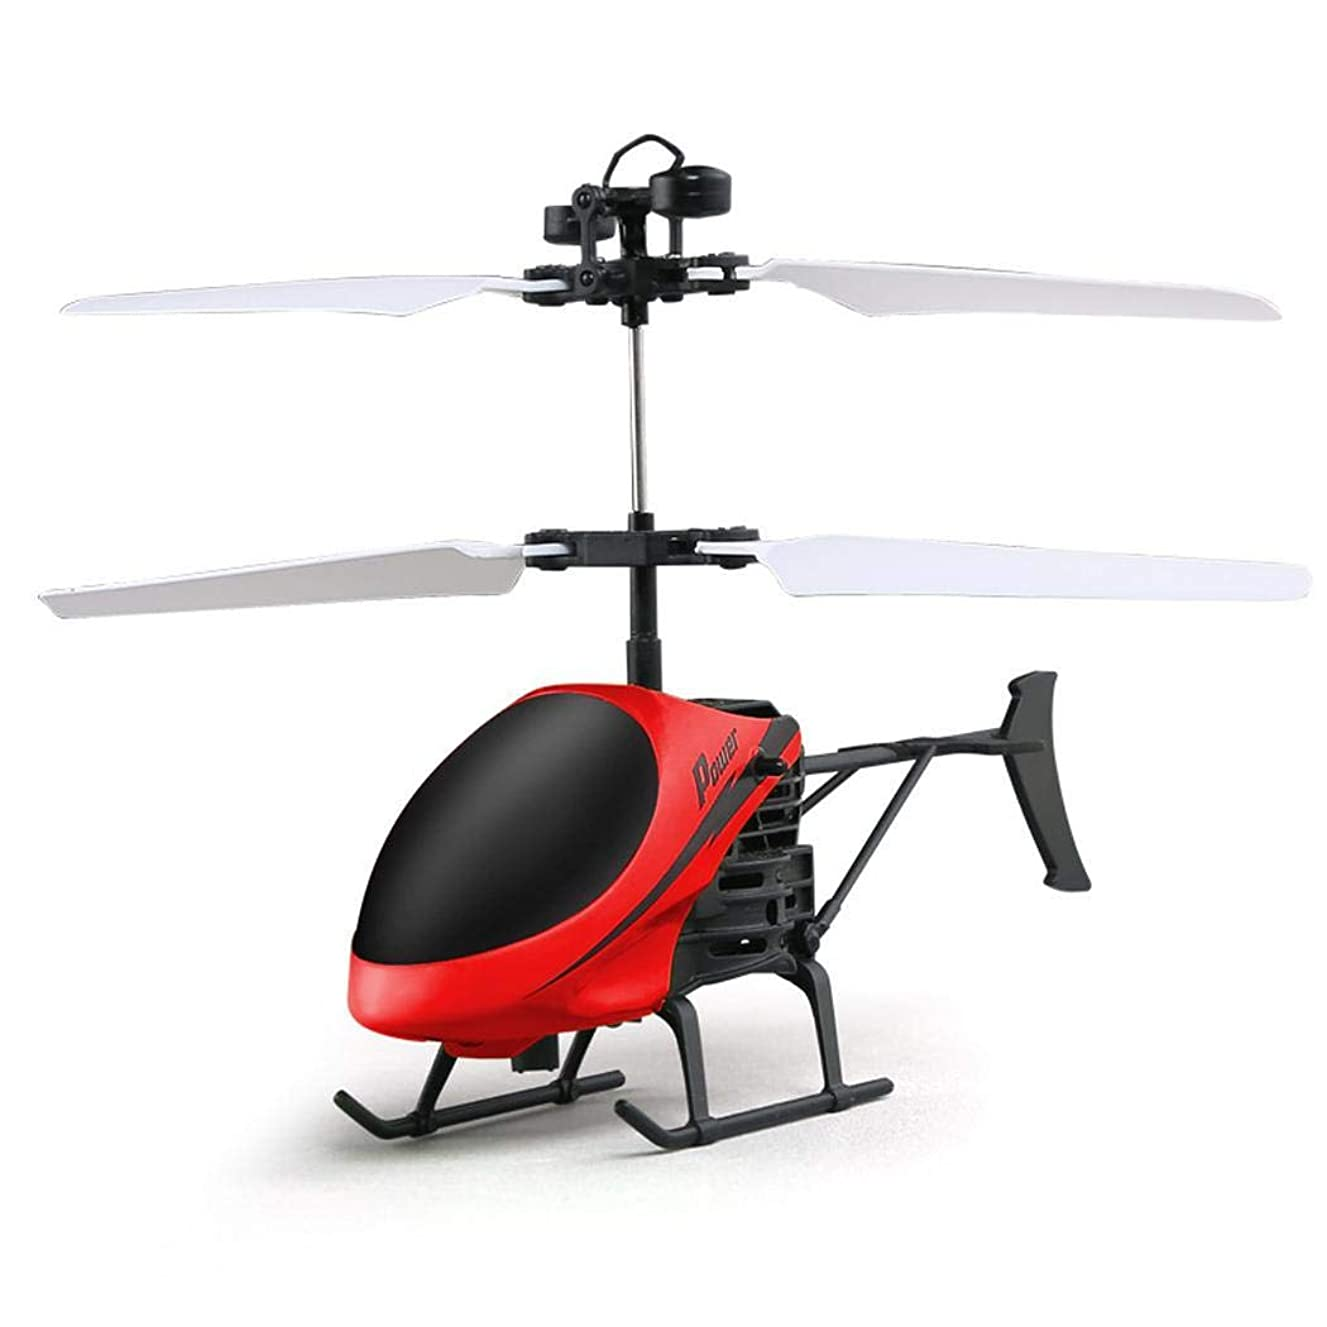 Xixou Gesture Induction Helicopter USB Charge Remotely Controllable Aircraft Toy Helicopters